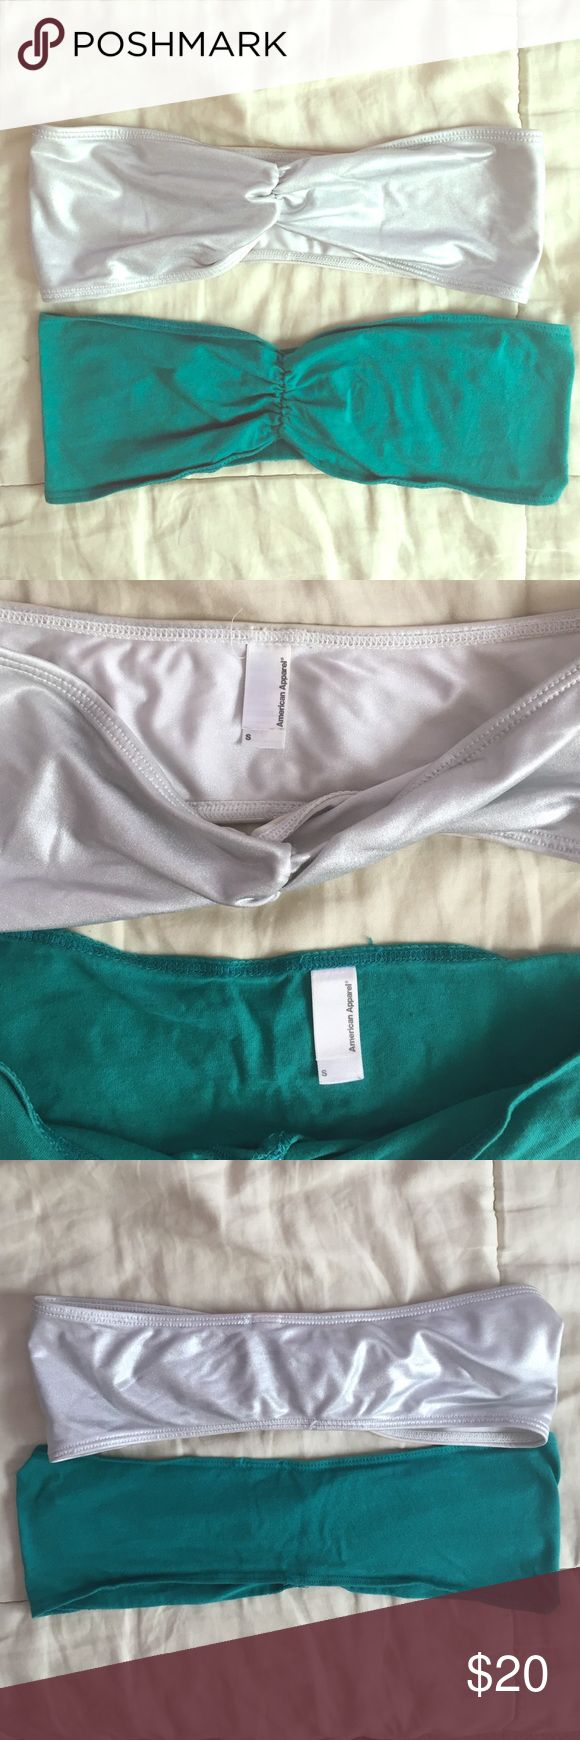 TWO American Apparel Cotton Spandex Tube Bra American Apparel Cotton Spandex Front Tube Bras, Selling 2 for discounted price, One is Silver and one is Green, Both Size S, No signs of wear! American Apparel Intimates & Sleepwear Bandeaus